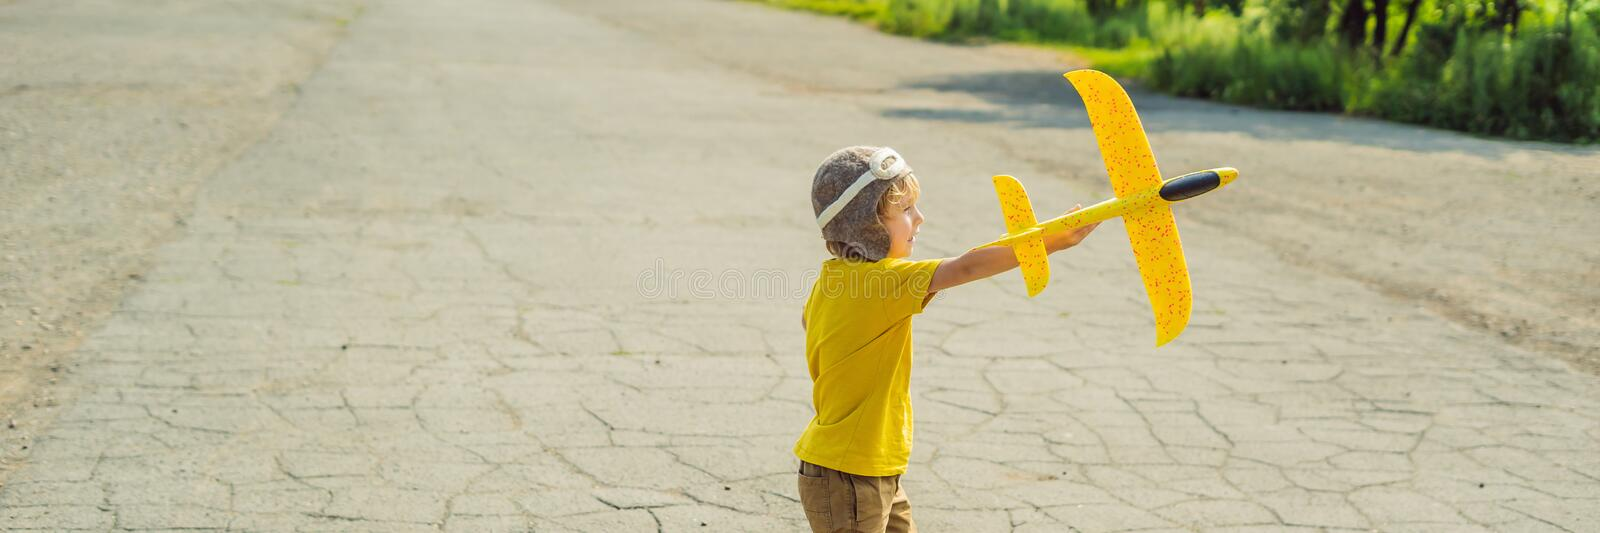 Happy kid playing with toy airplane against old runway background. Traveling with kids concept BANNER, LONG FORMAT. Happy kid playing with toy airplane against royalty free stock photography